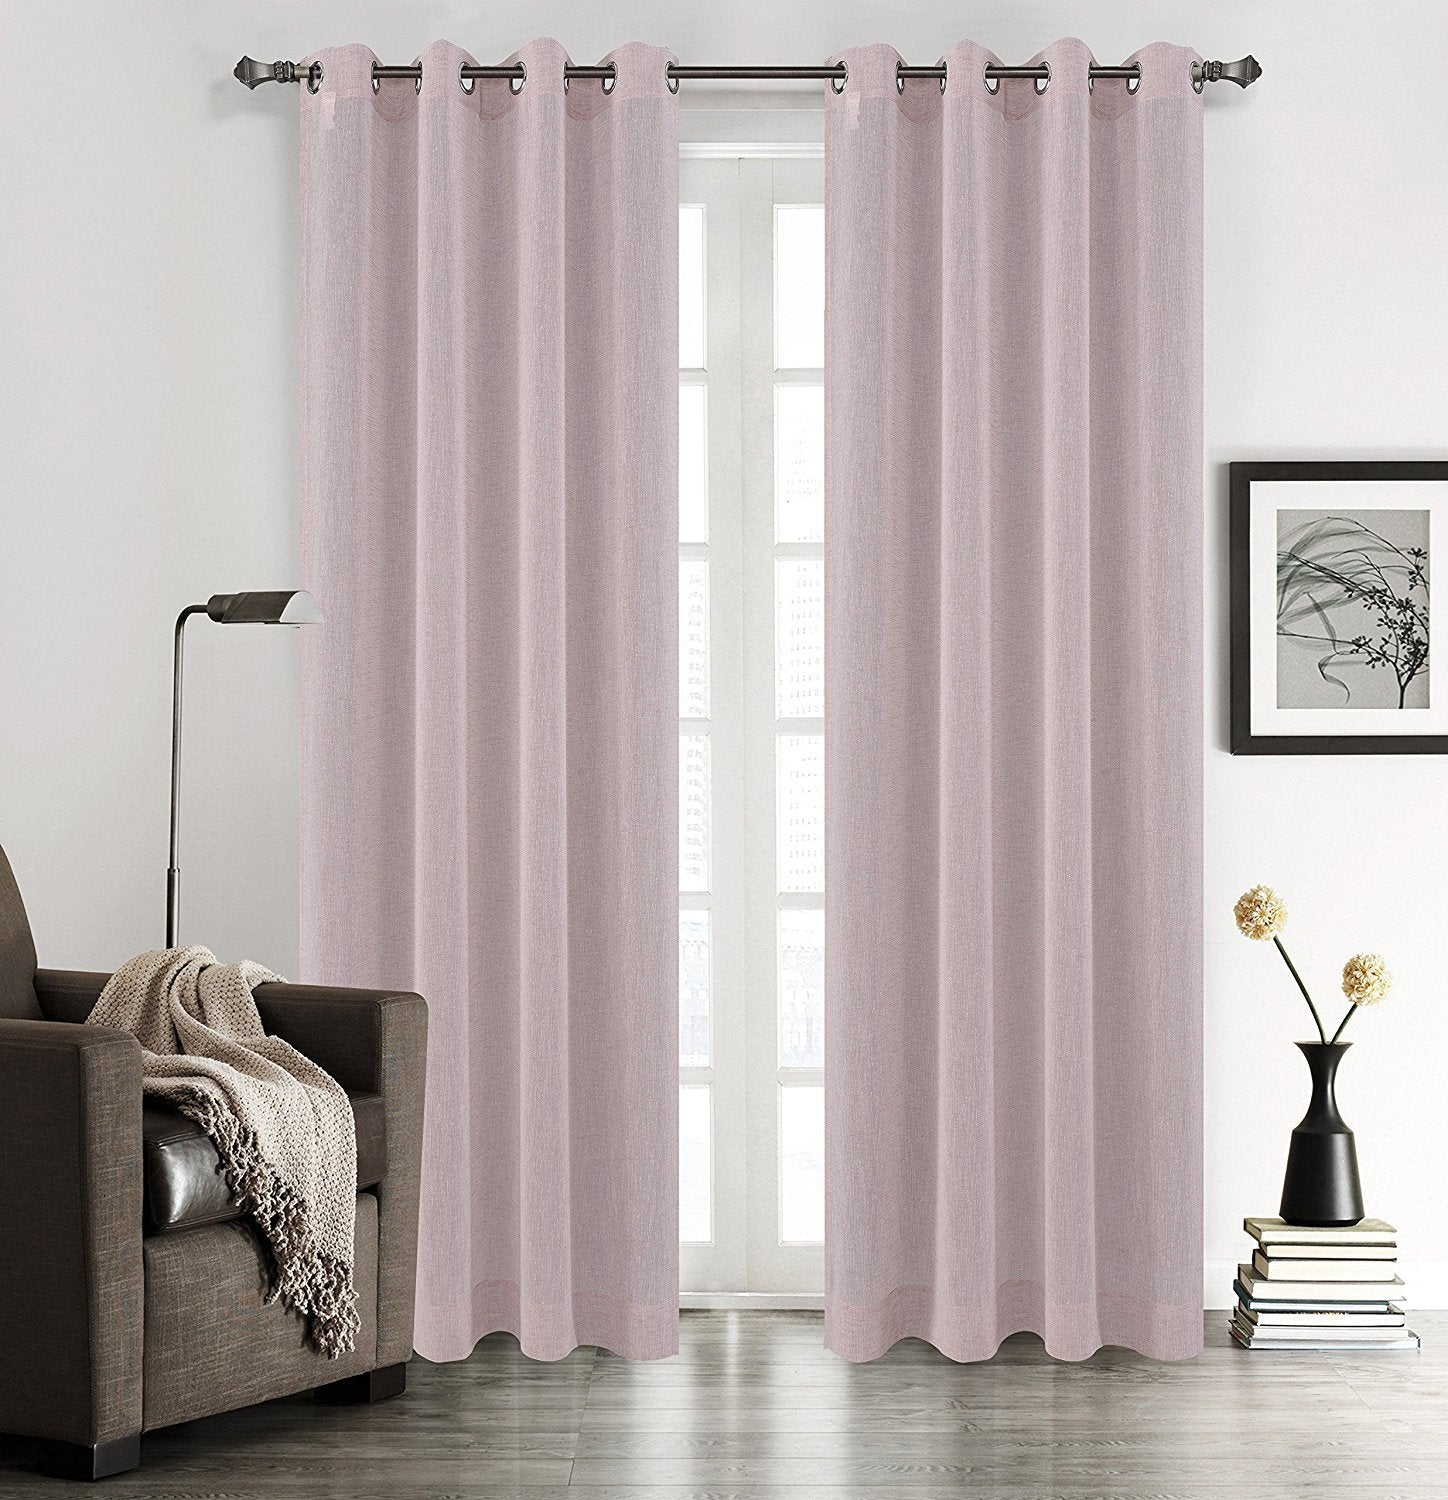 in panels house inspiration tips fresh applied curtain your cozy to sheer curtains ideas taupe